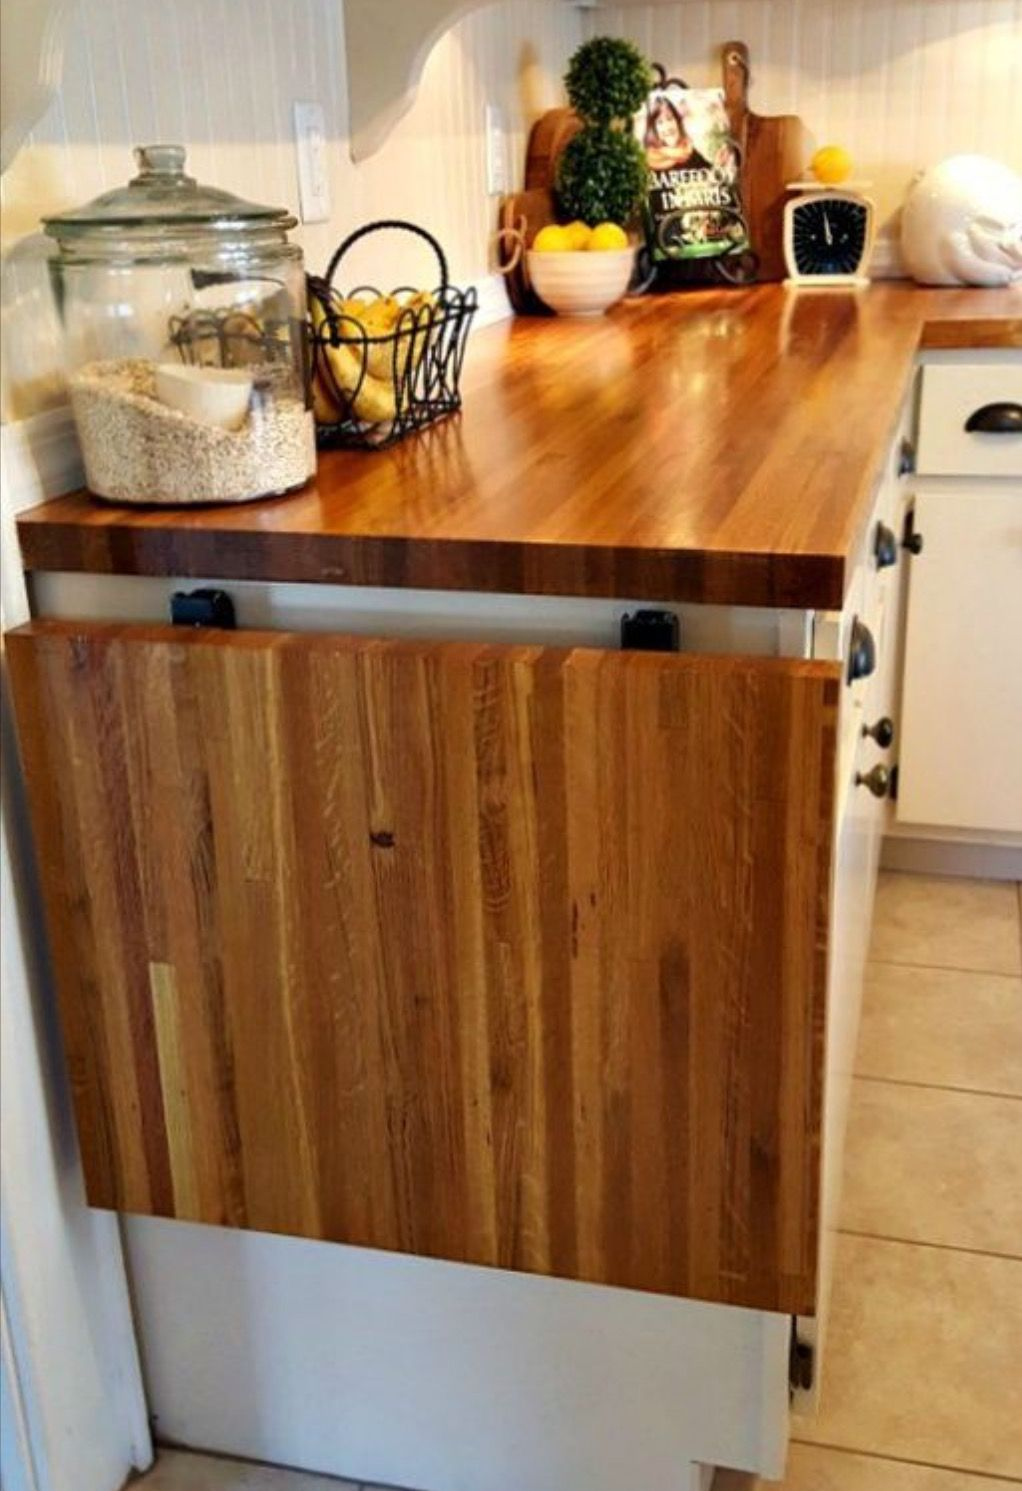 Flip Up Table At End Of Counter Kitchen Remodel Small Kitchen Design Small Kitchen Remodel